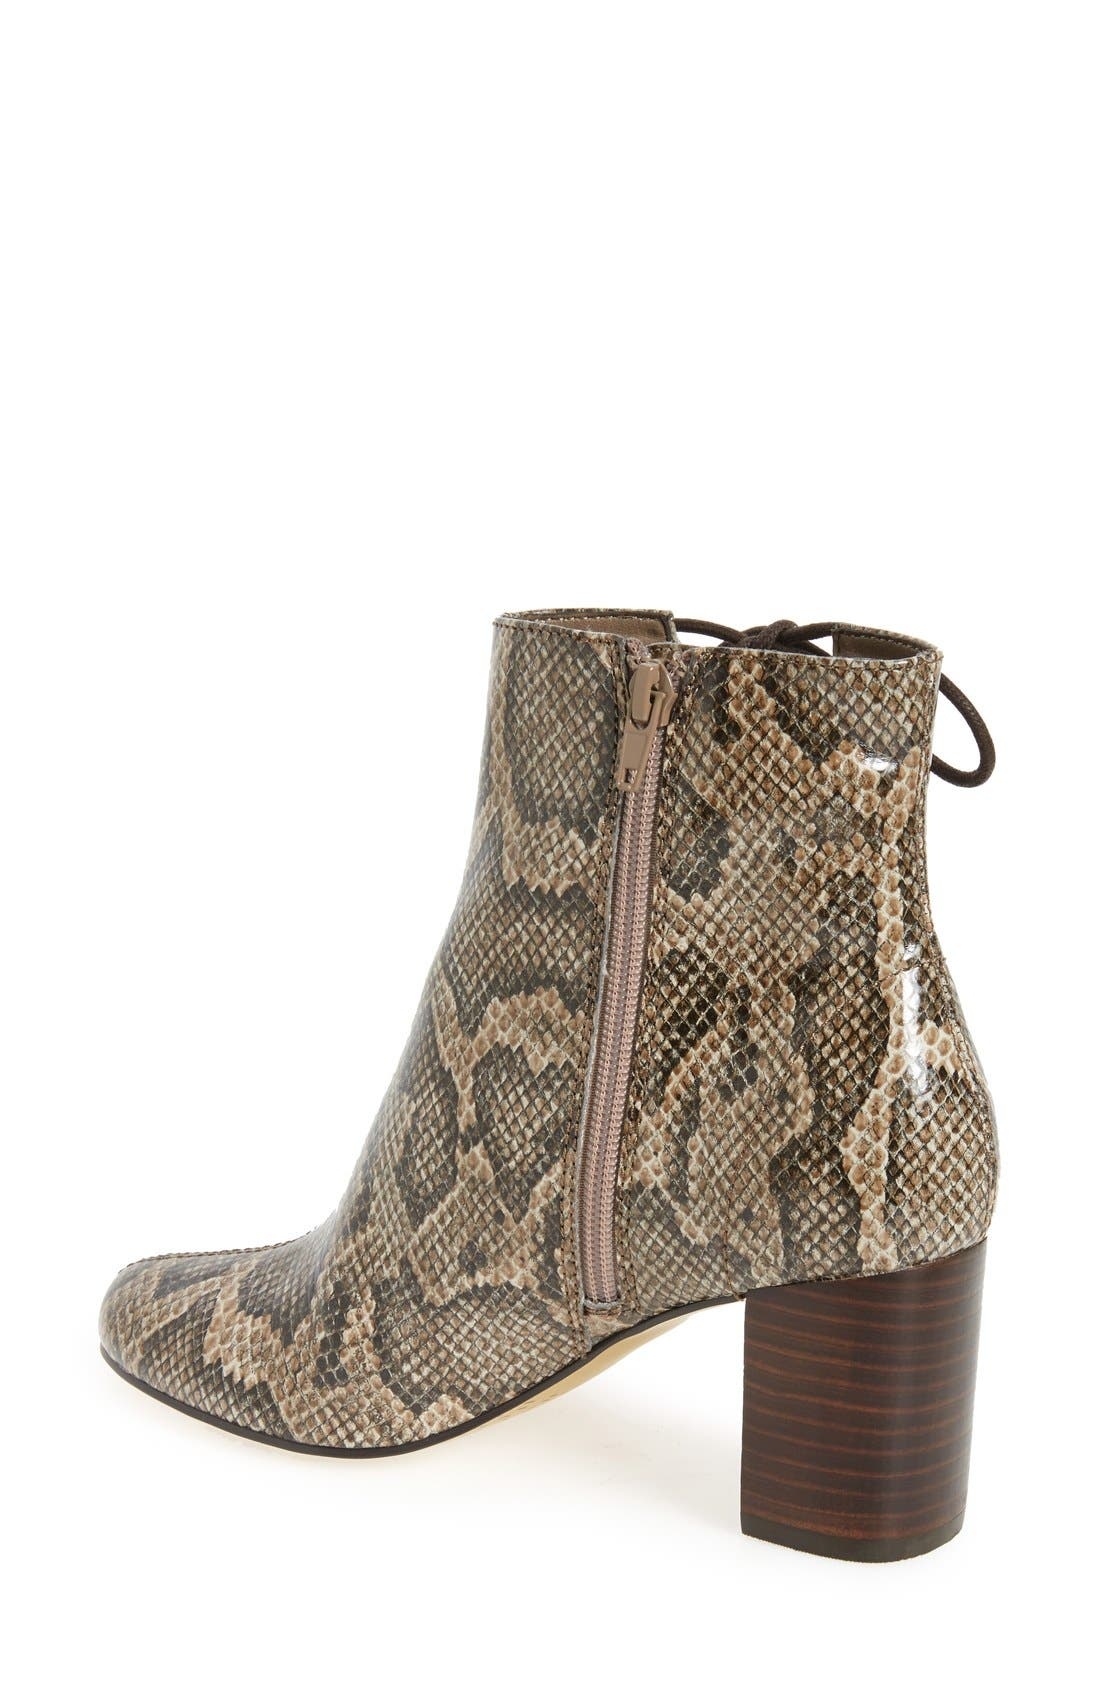 'Kirby' Bootie,                             Alternate thumbnail 2, color,                             Natural Snake Print Leather